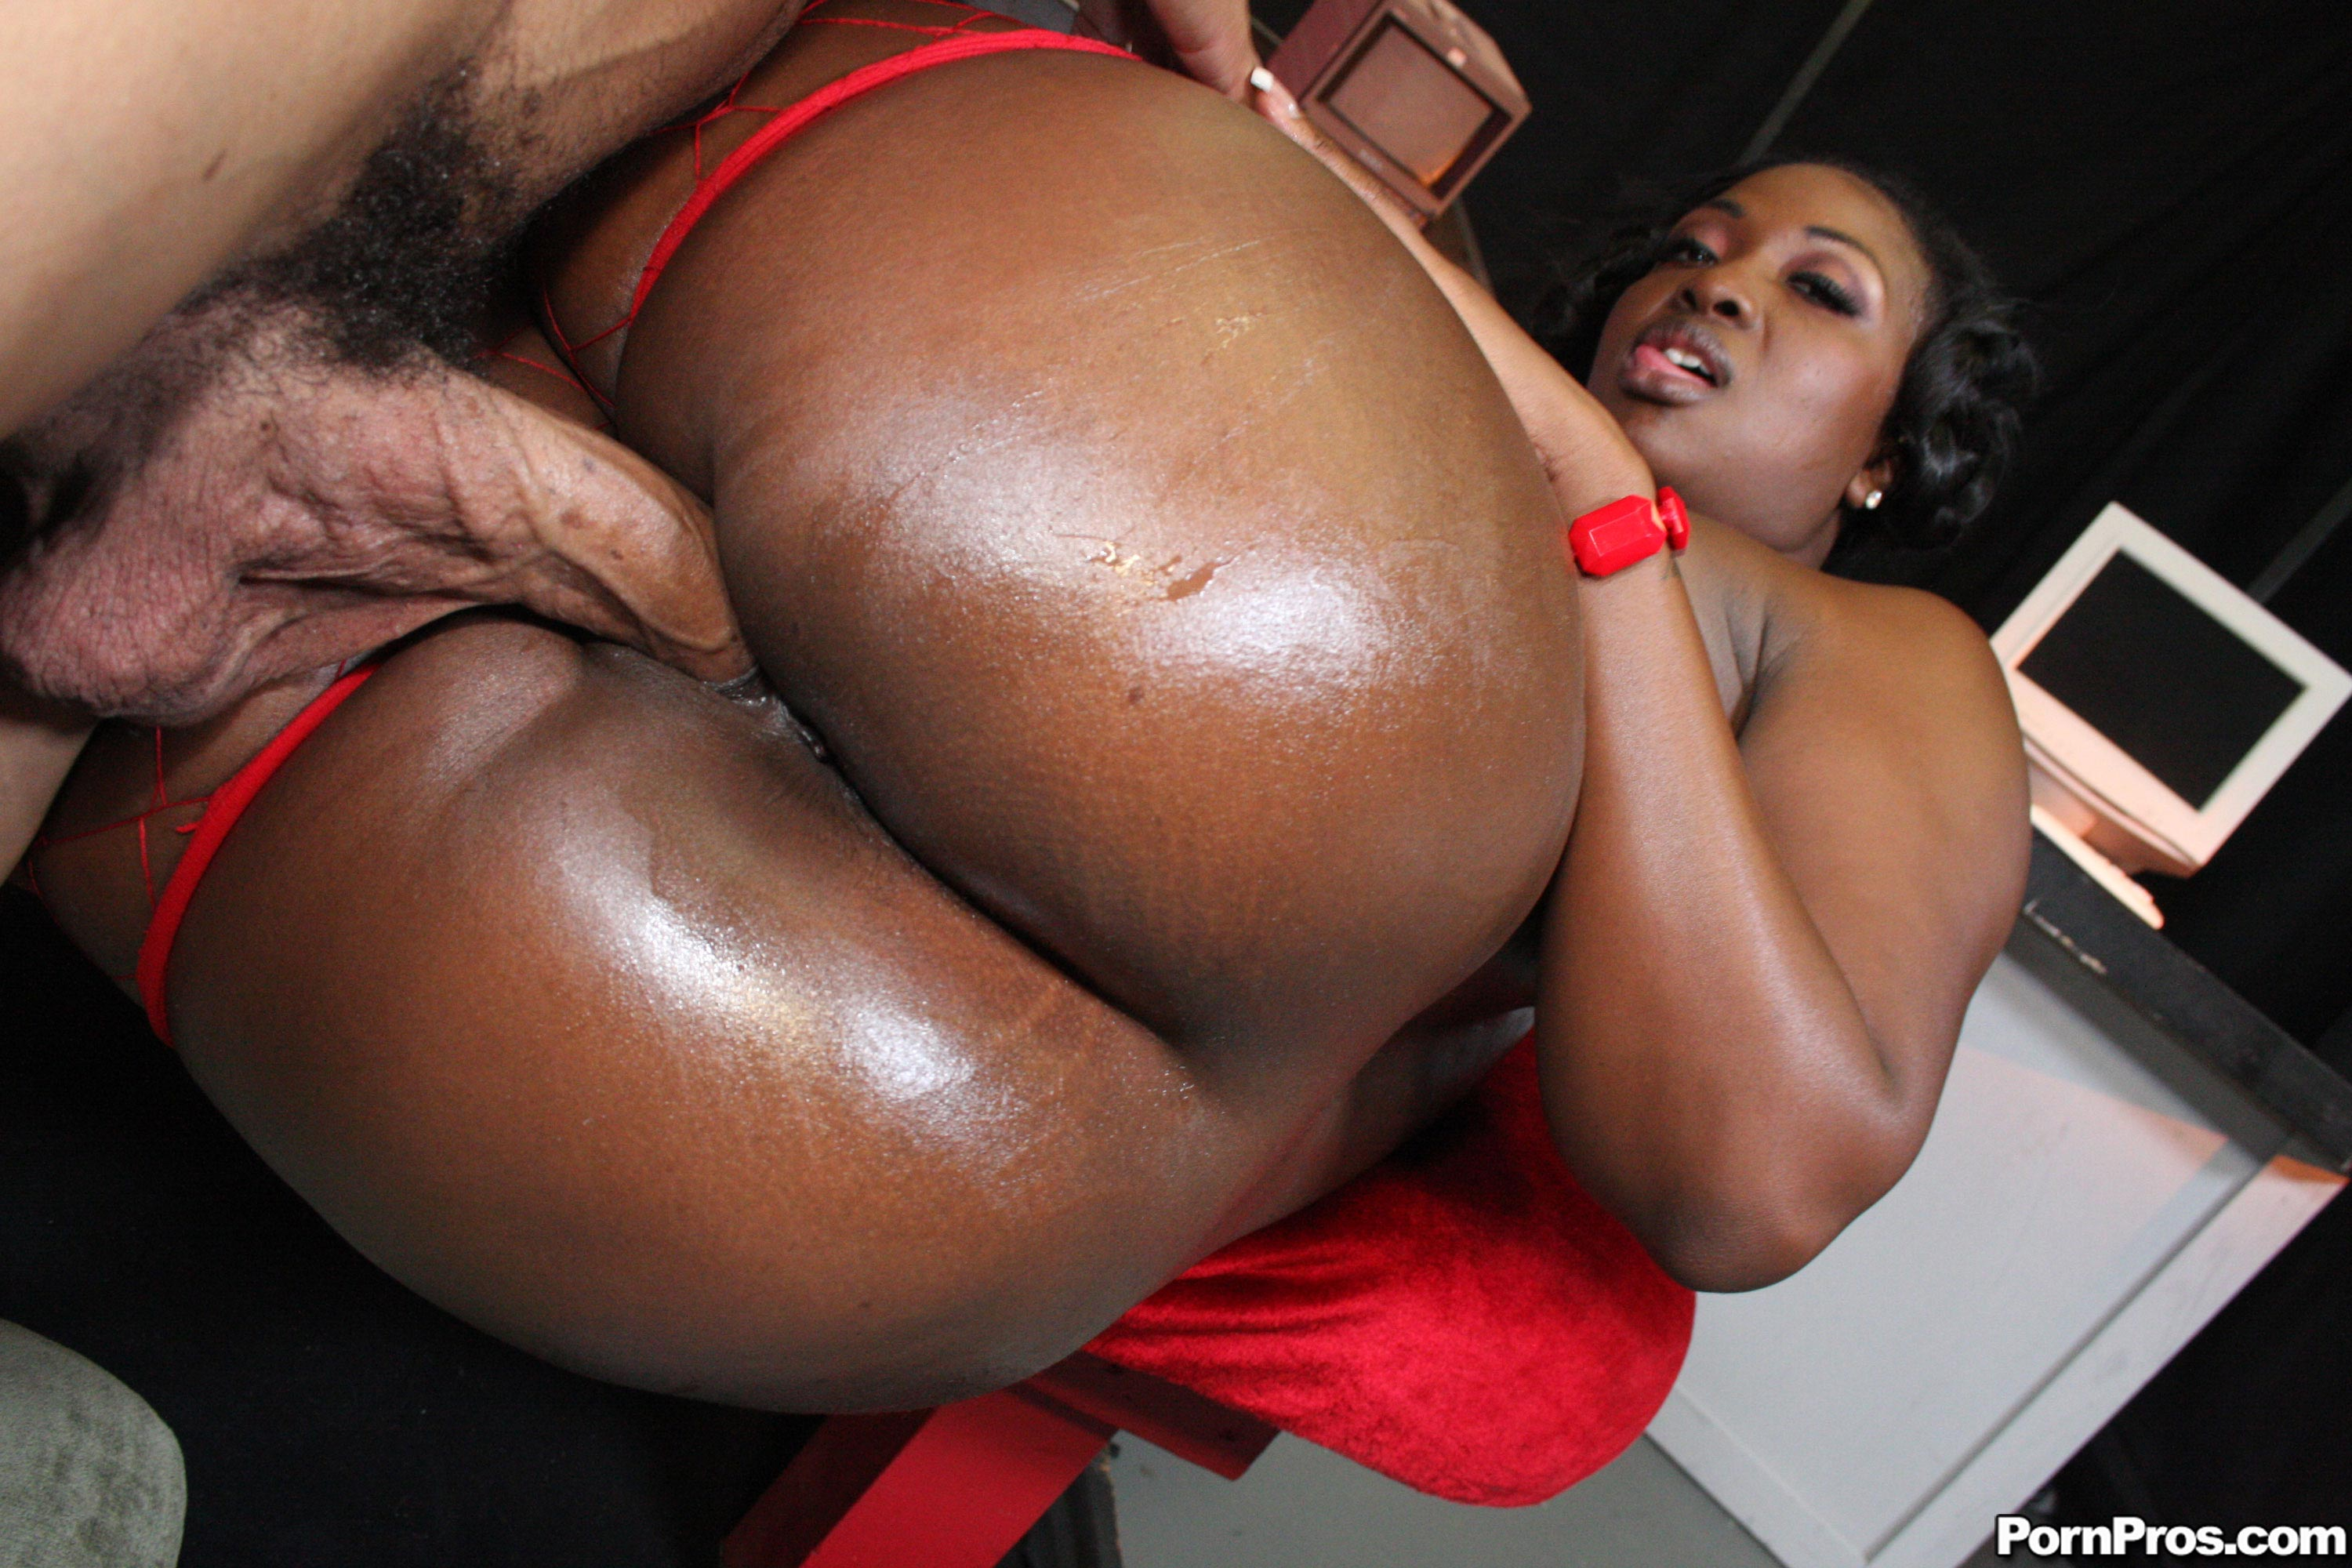 big ebony porn tubes - ass